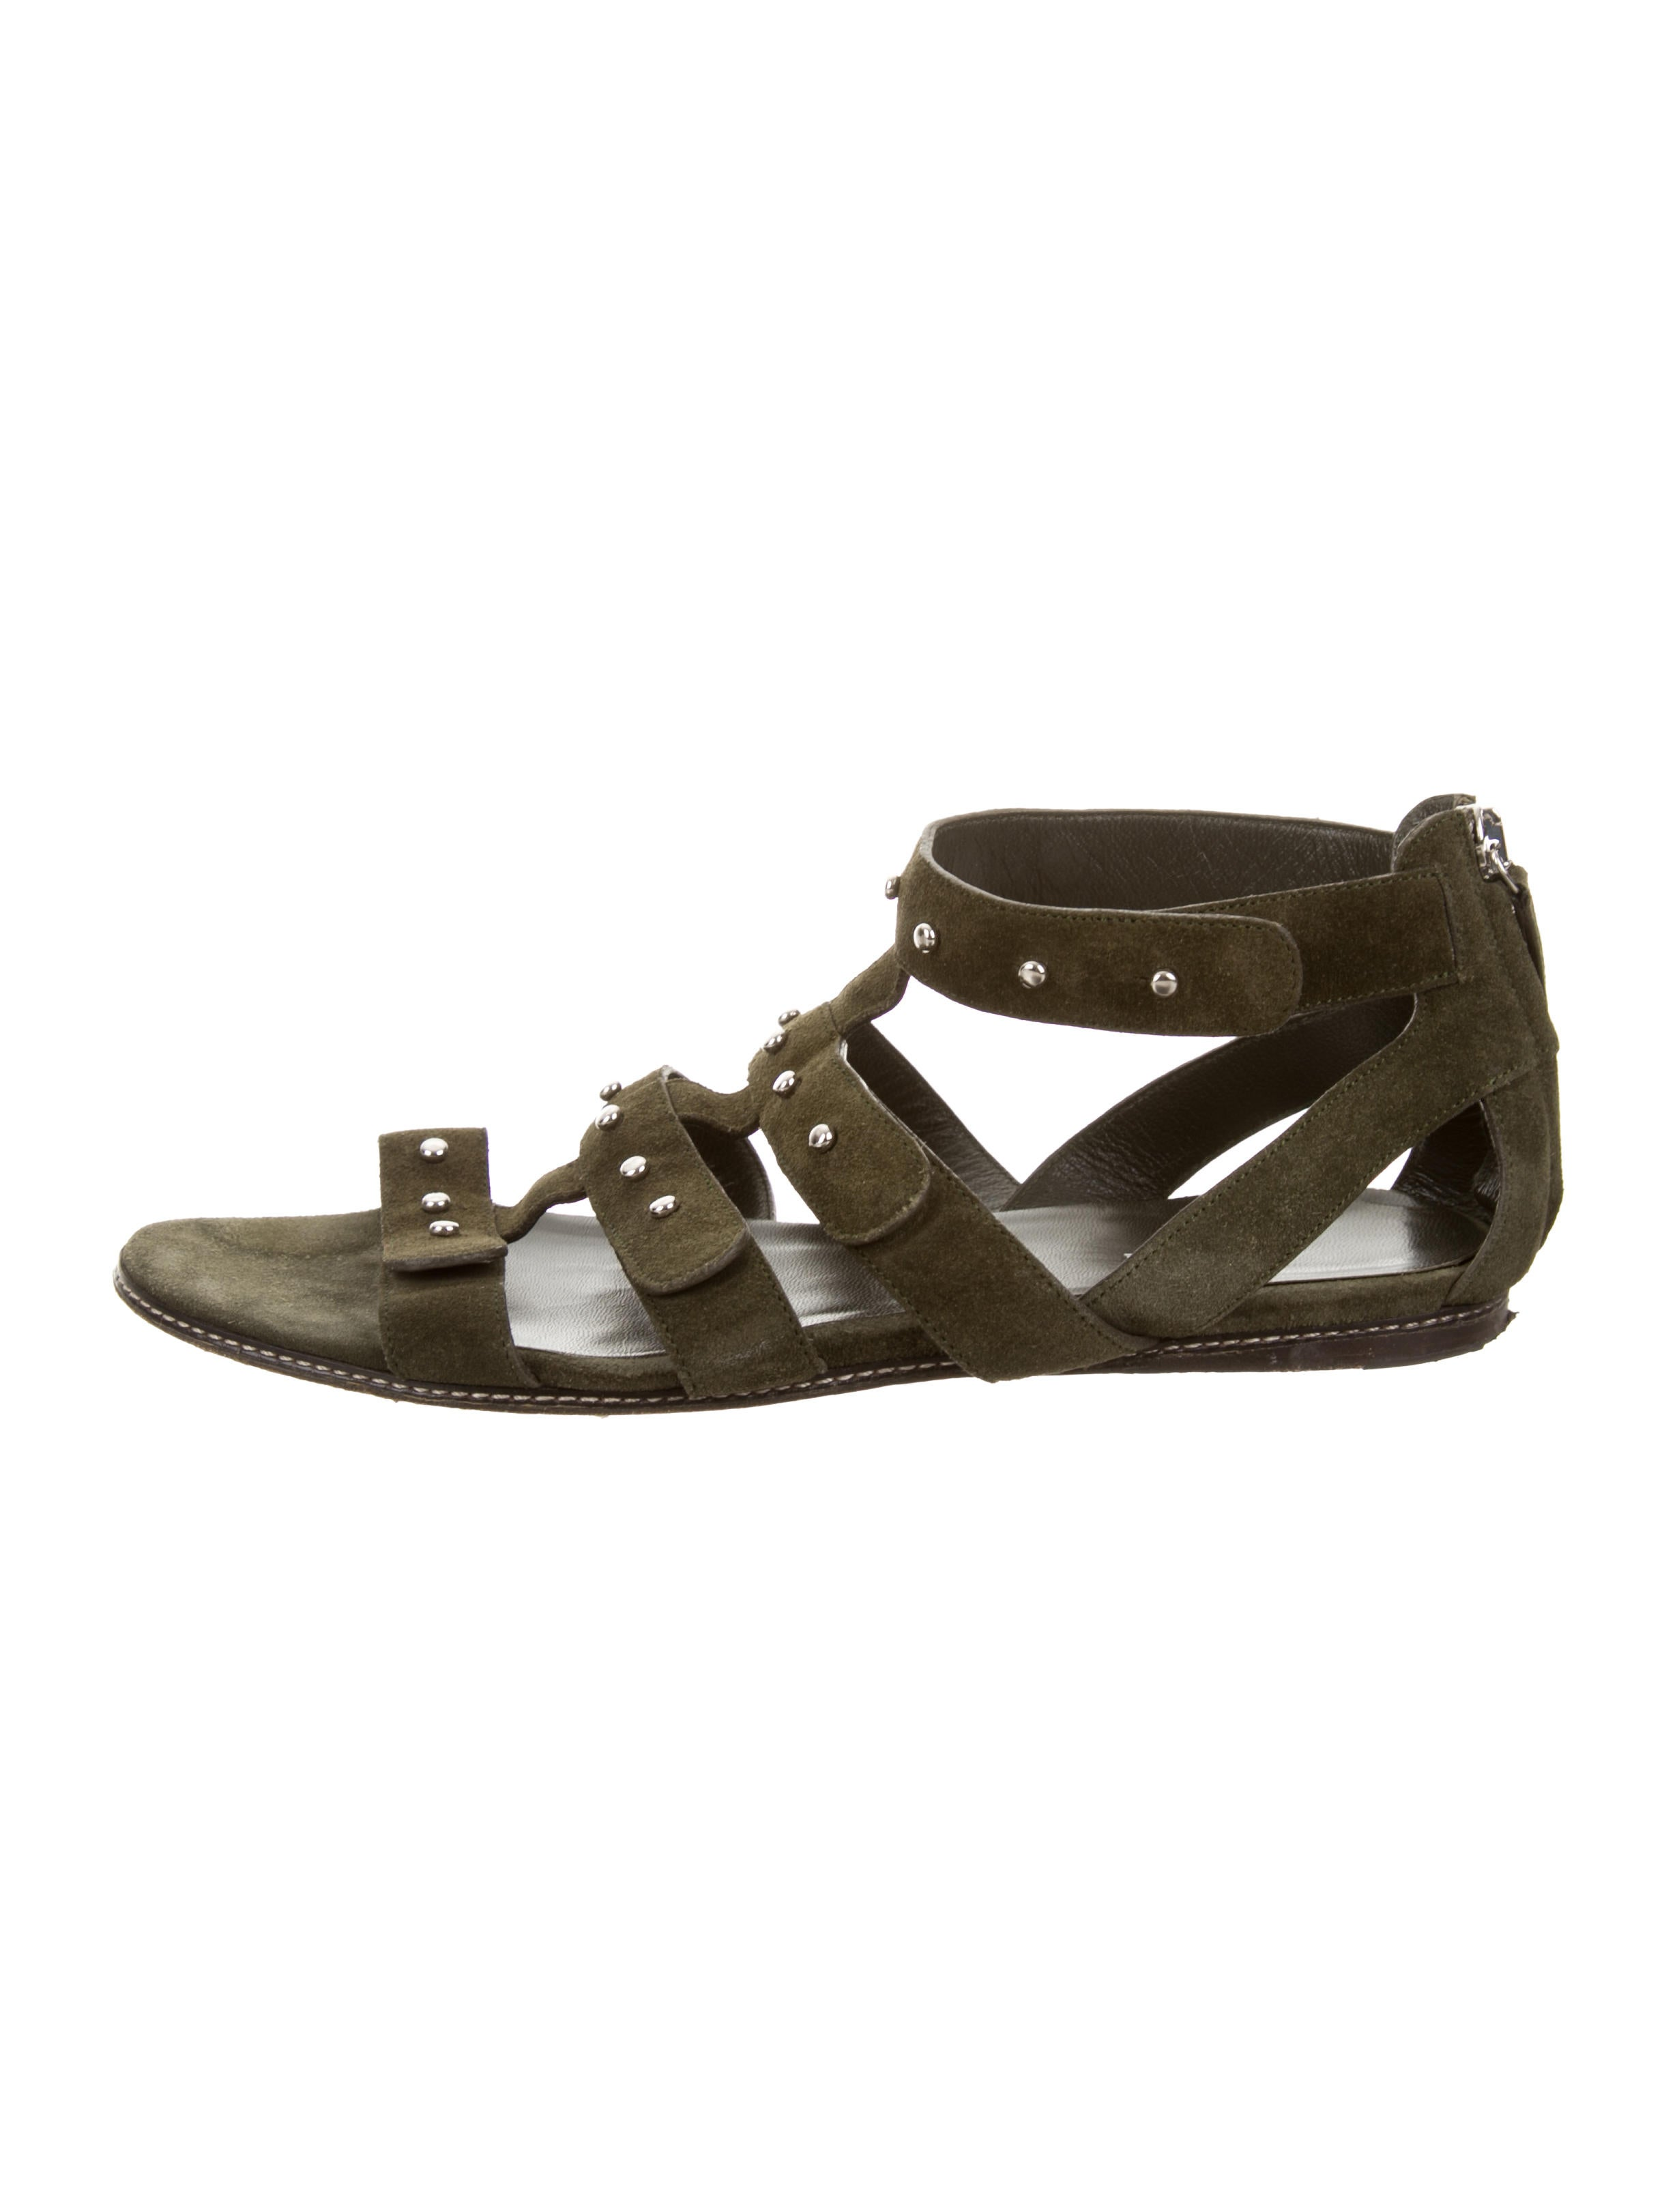 gucci suede studded sandals shoes guc99628 the realreal